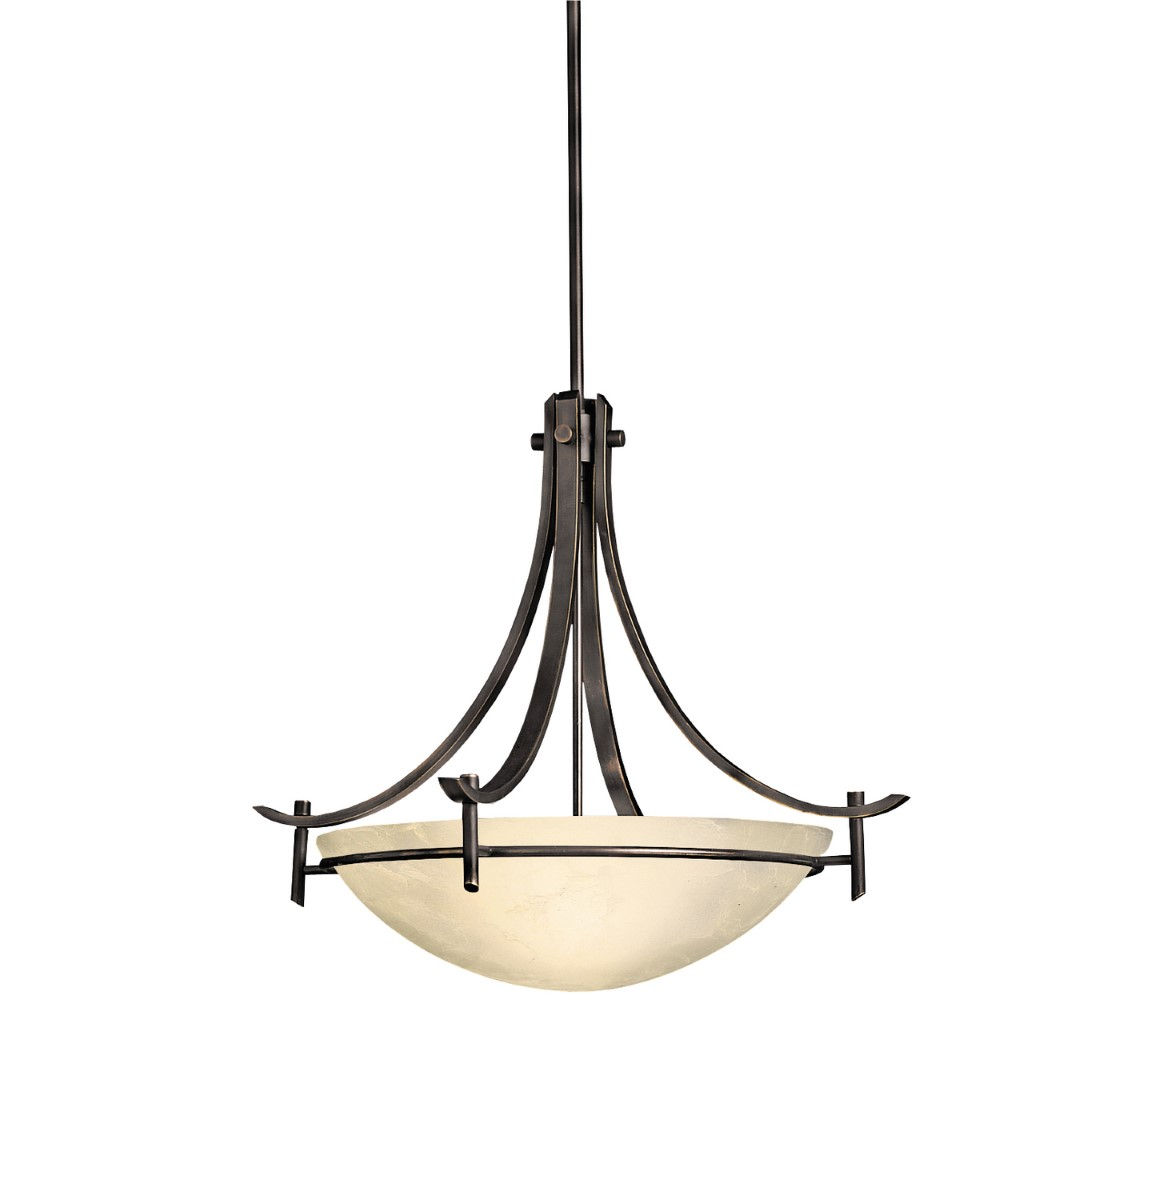 Kichler Olympia Olympia Pendant Light with Sunset Marble Marble Shade - Olde Bronze (3278OZ)